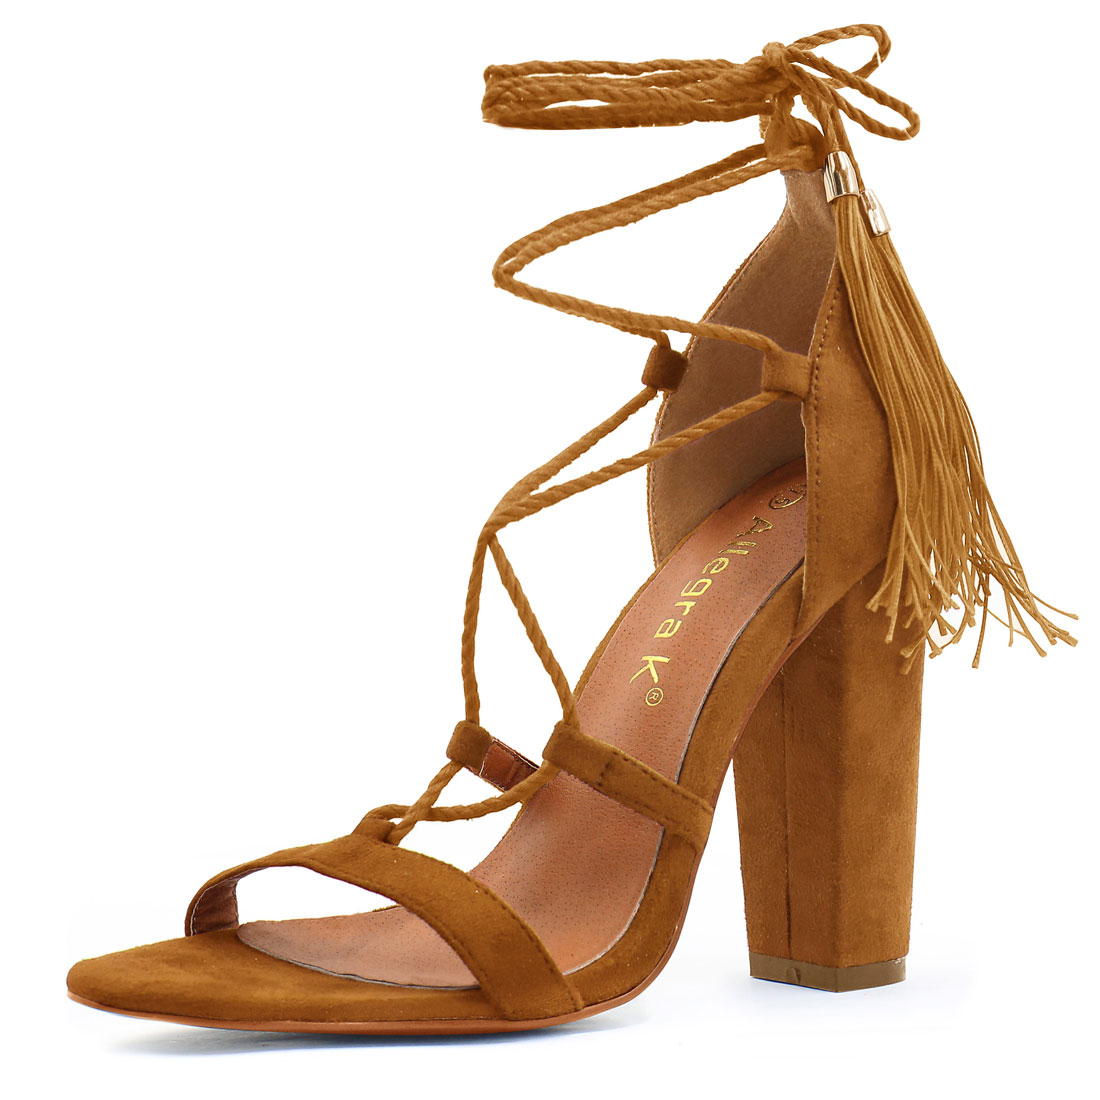 Women Chunky High Heel Tassel Closure Lace Up Sandals Camel US 8.5